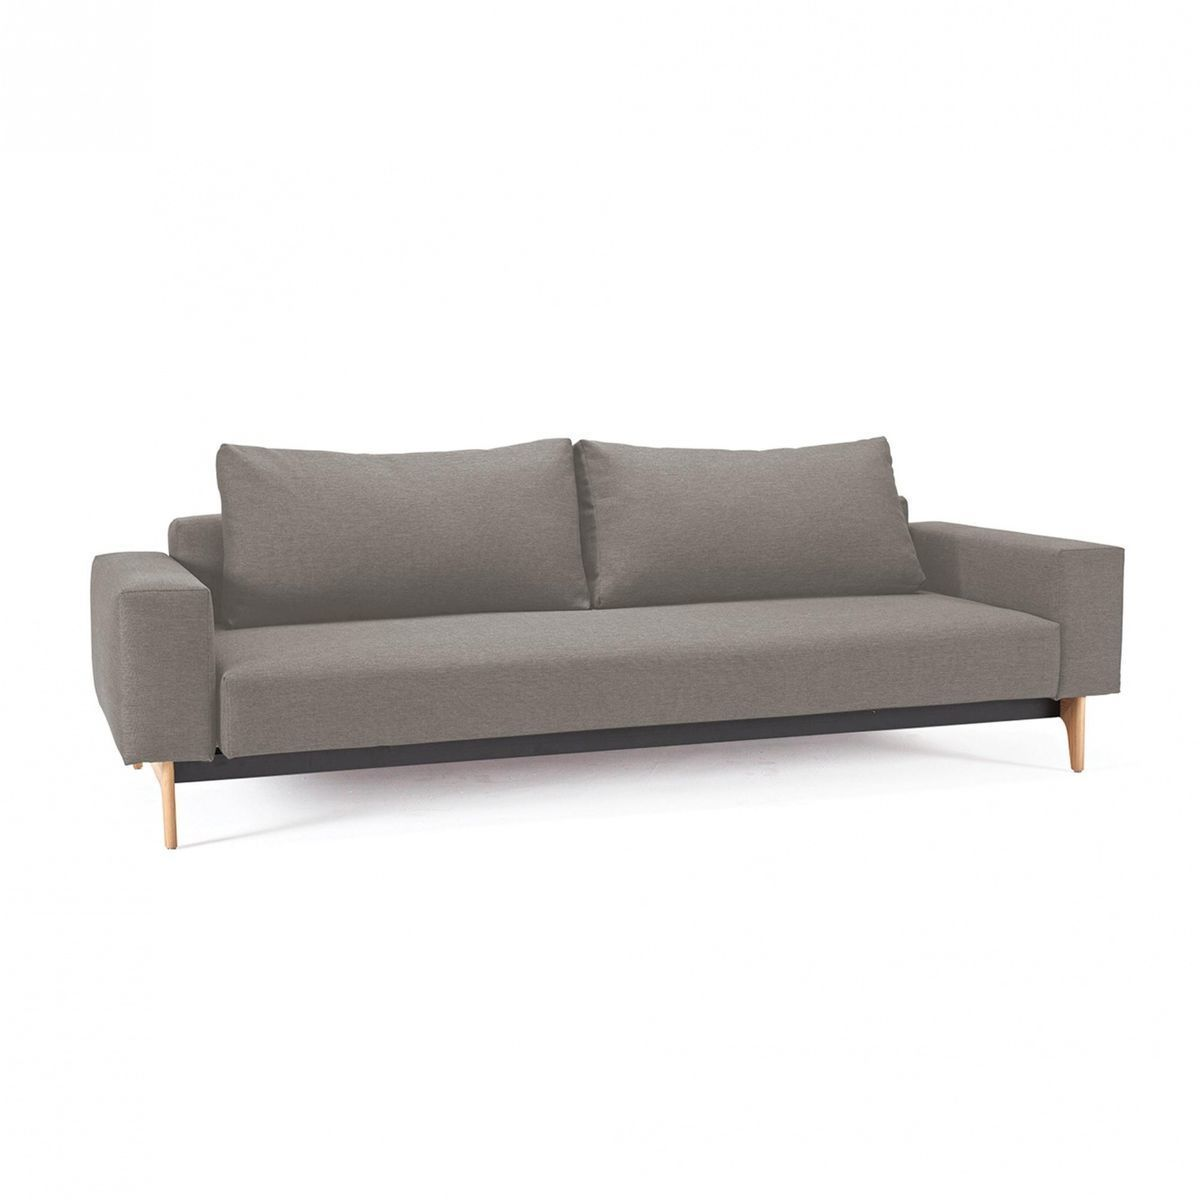 Schlafsofa grau  Idun Schlafsofa | Innovation | AmbienteDirect.com